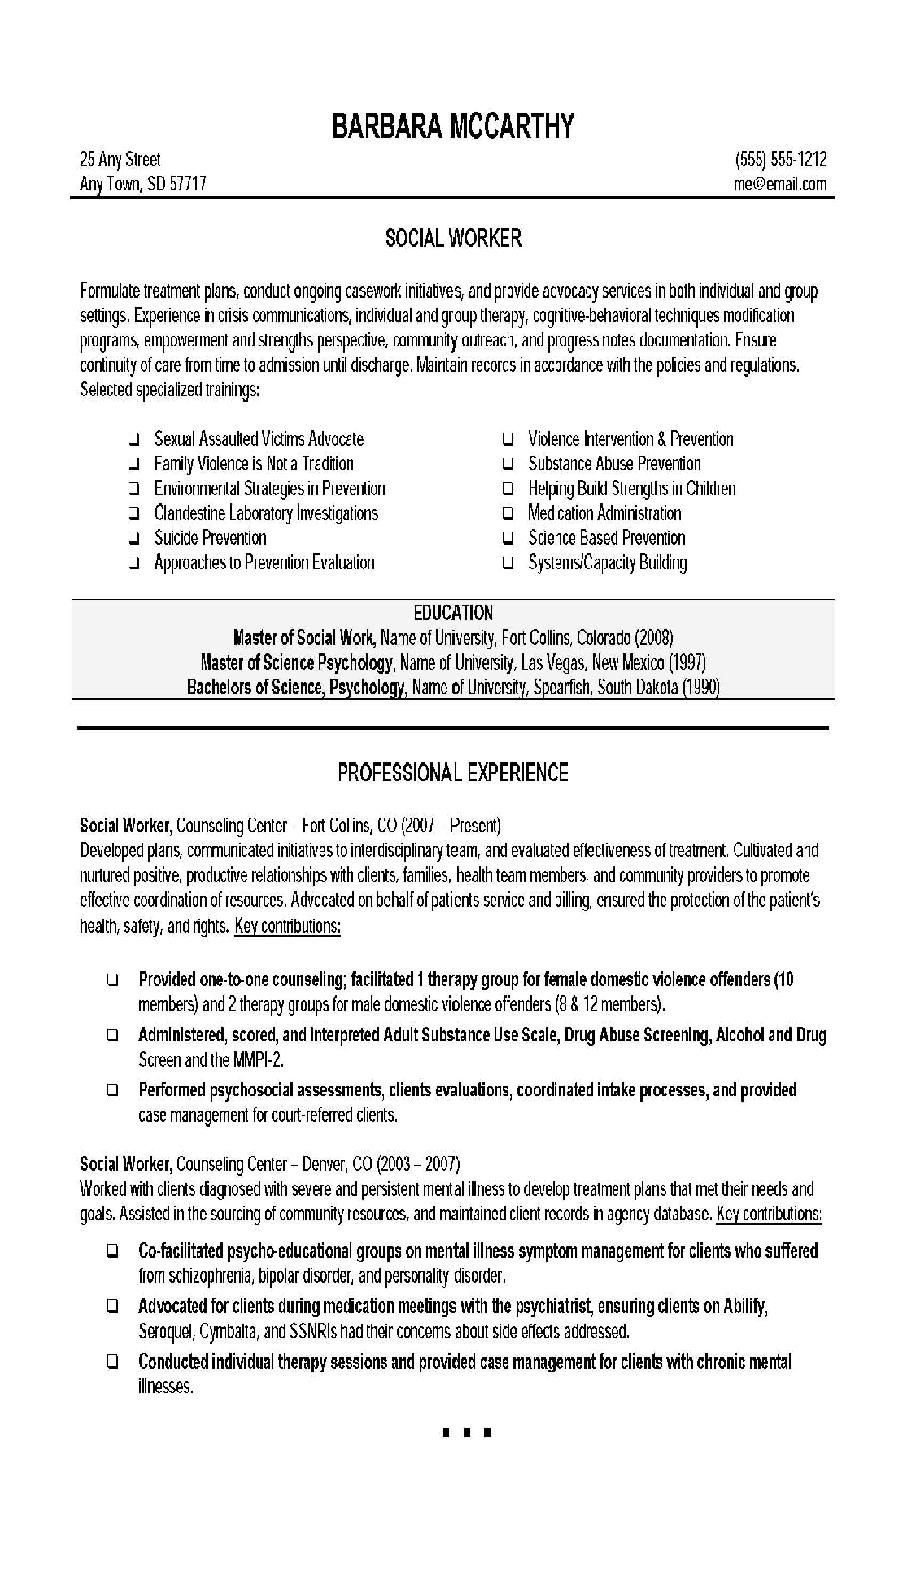 social worker resume 4 - Resume Format For Social Worker